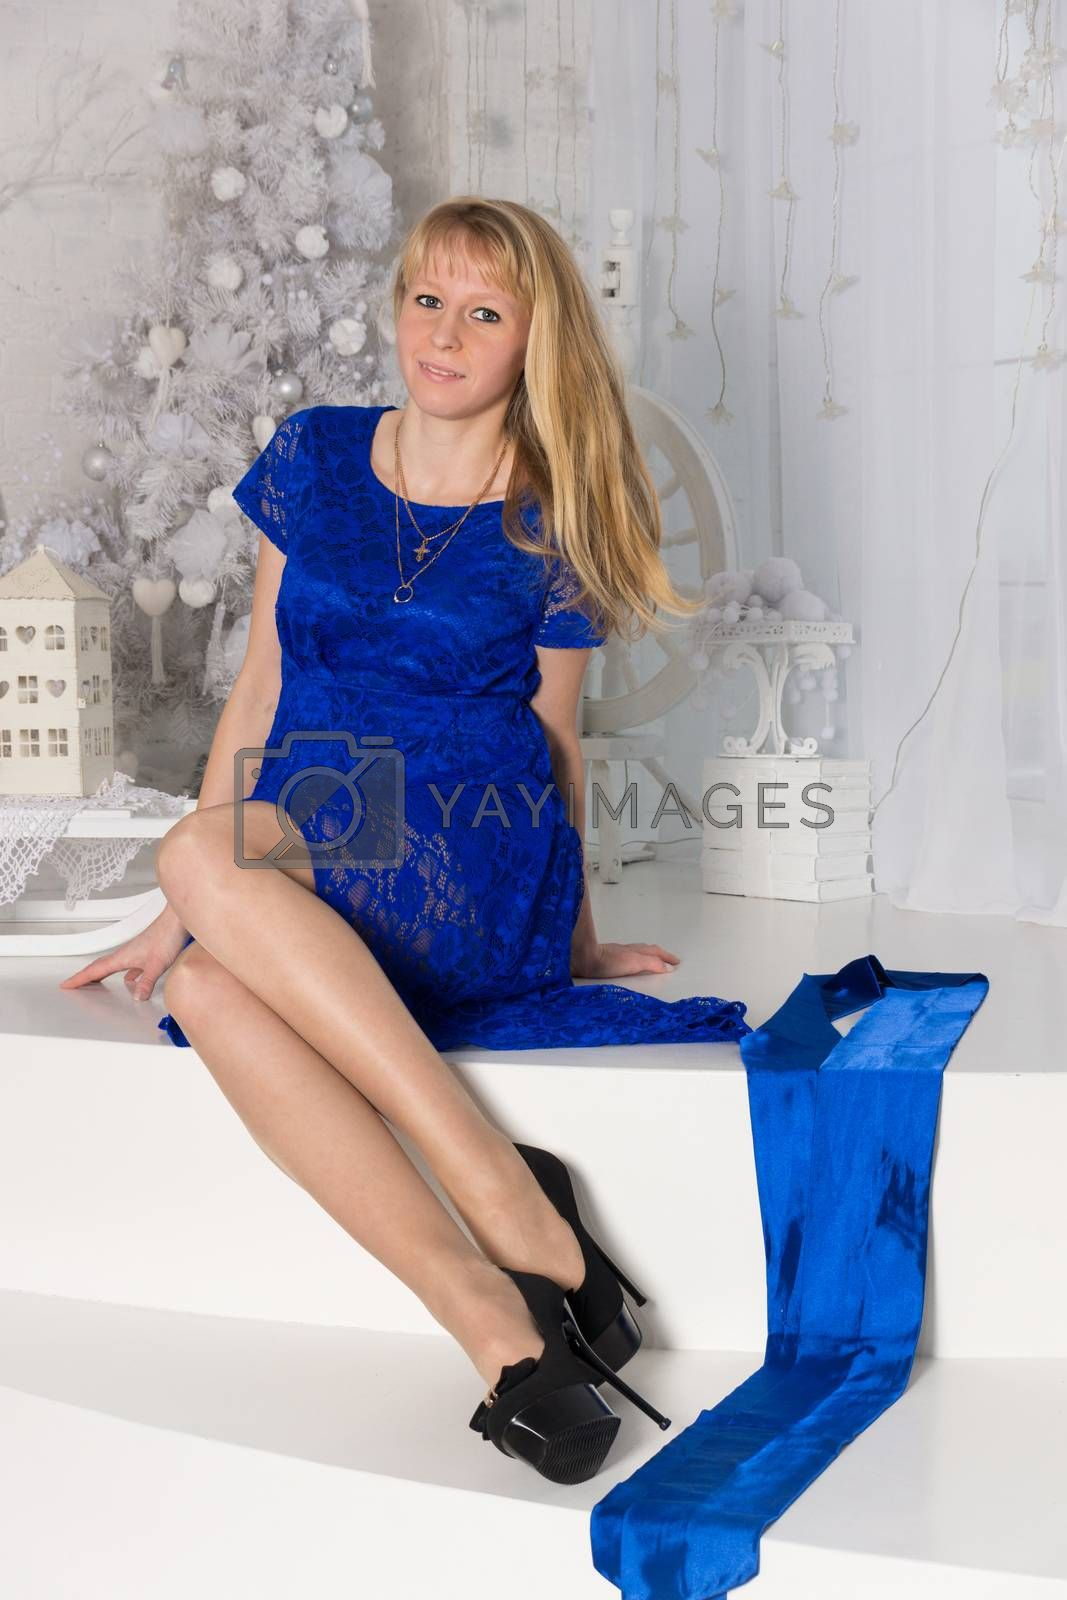 The photo shows a girl sitting on the stairs